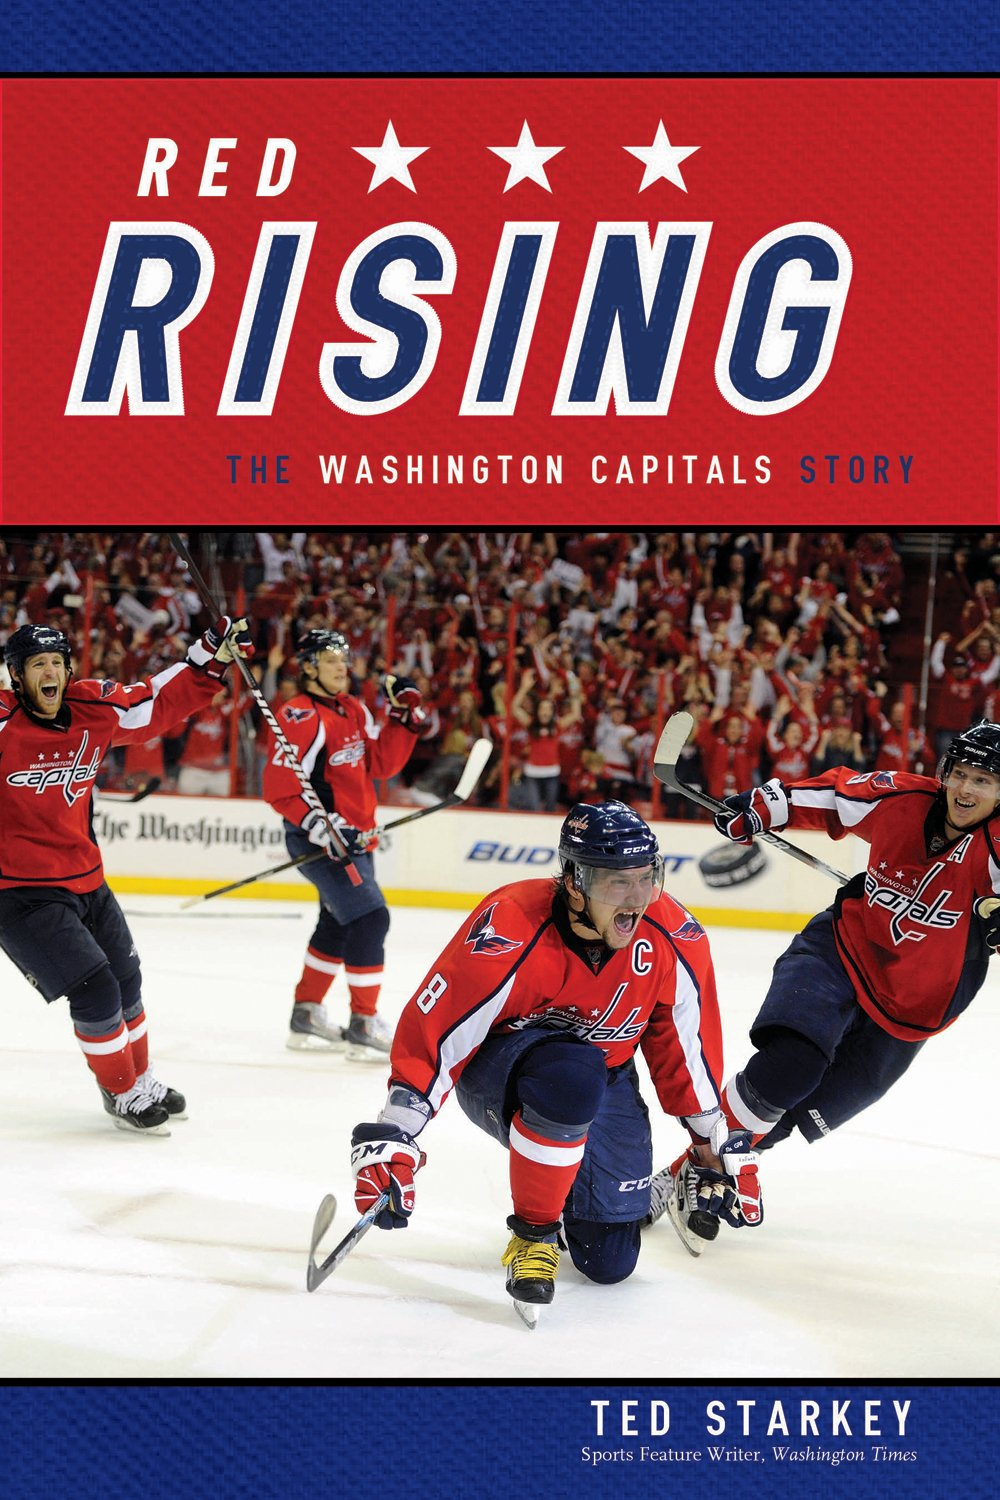 a0fd8c32e Red Rising  The Washington Capitals Story Paperback – August 24